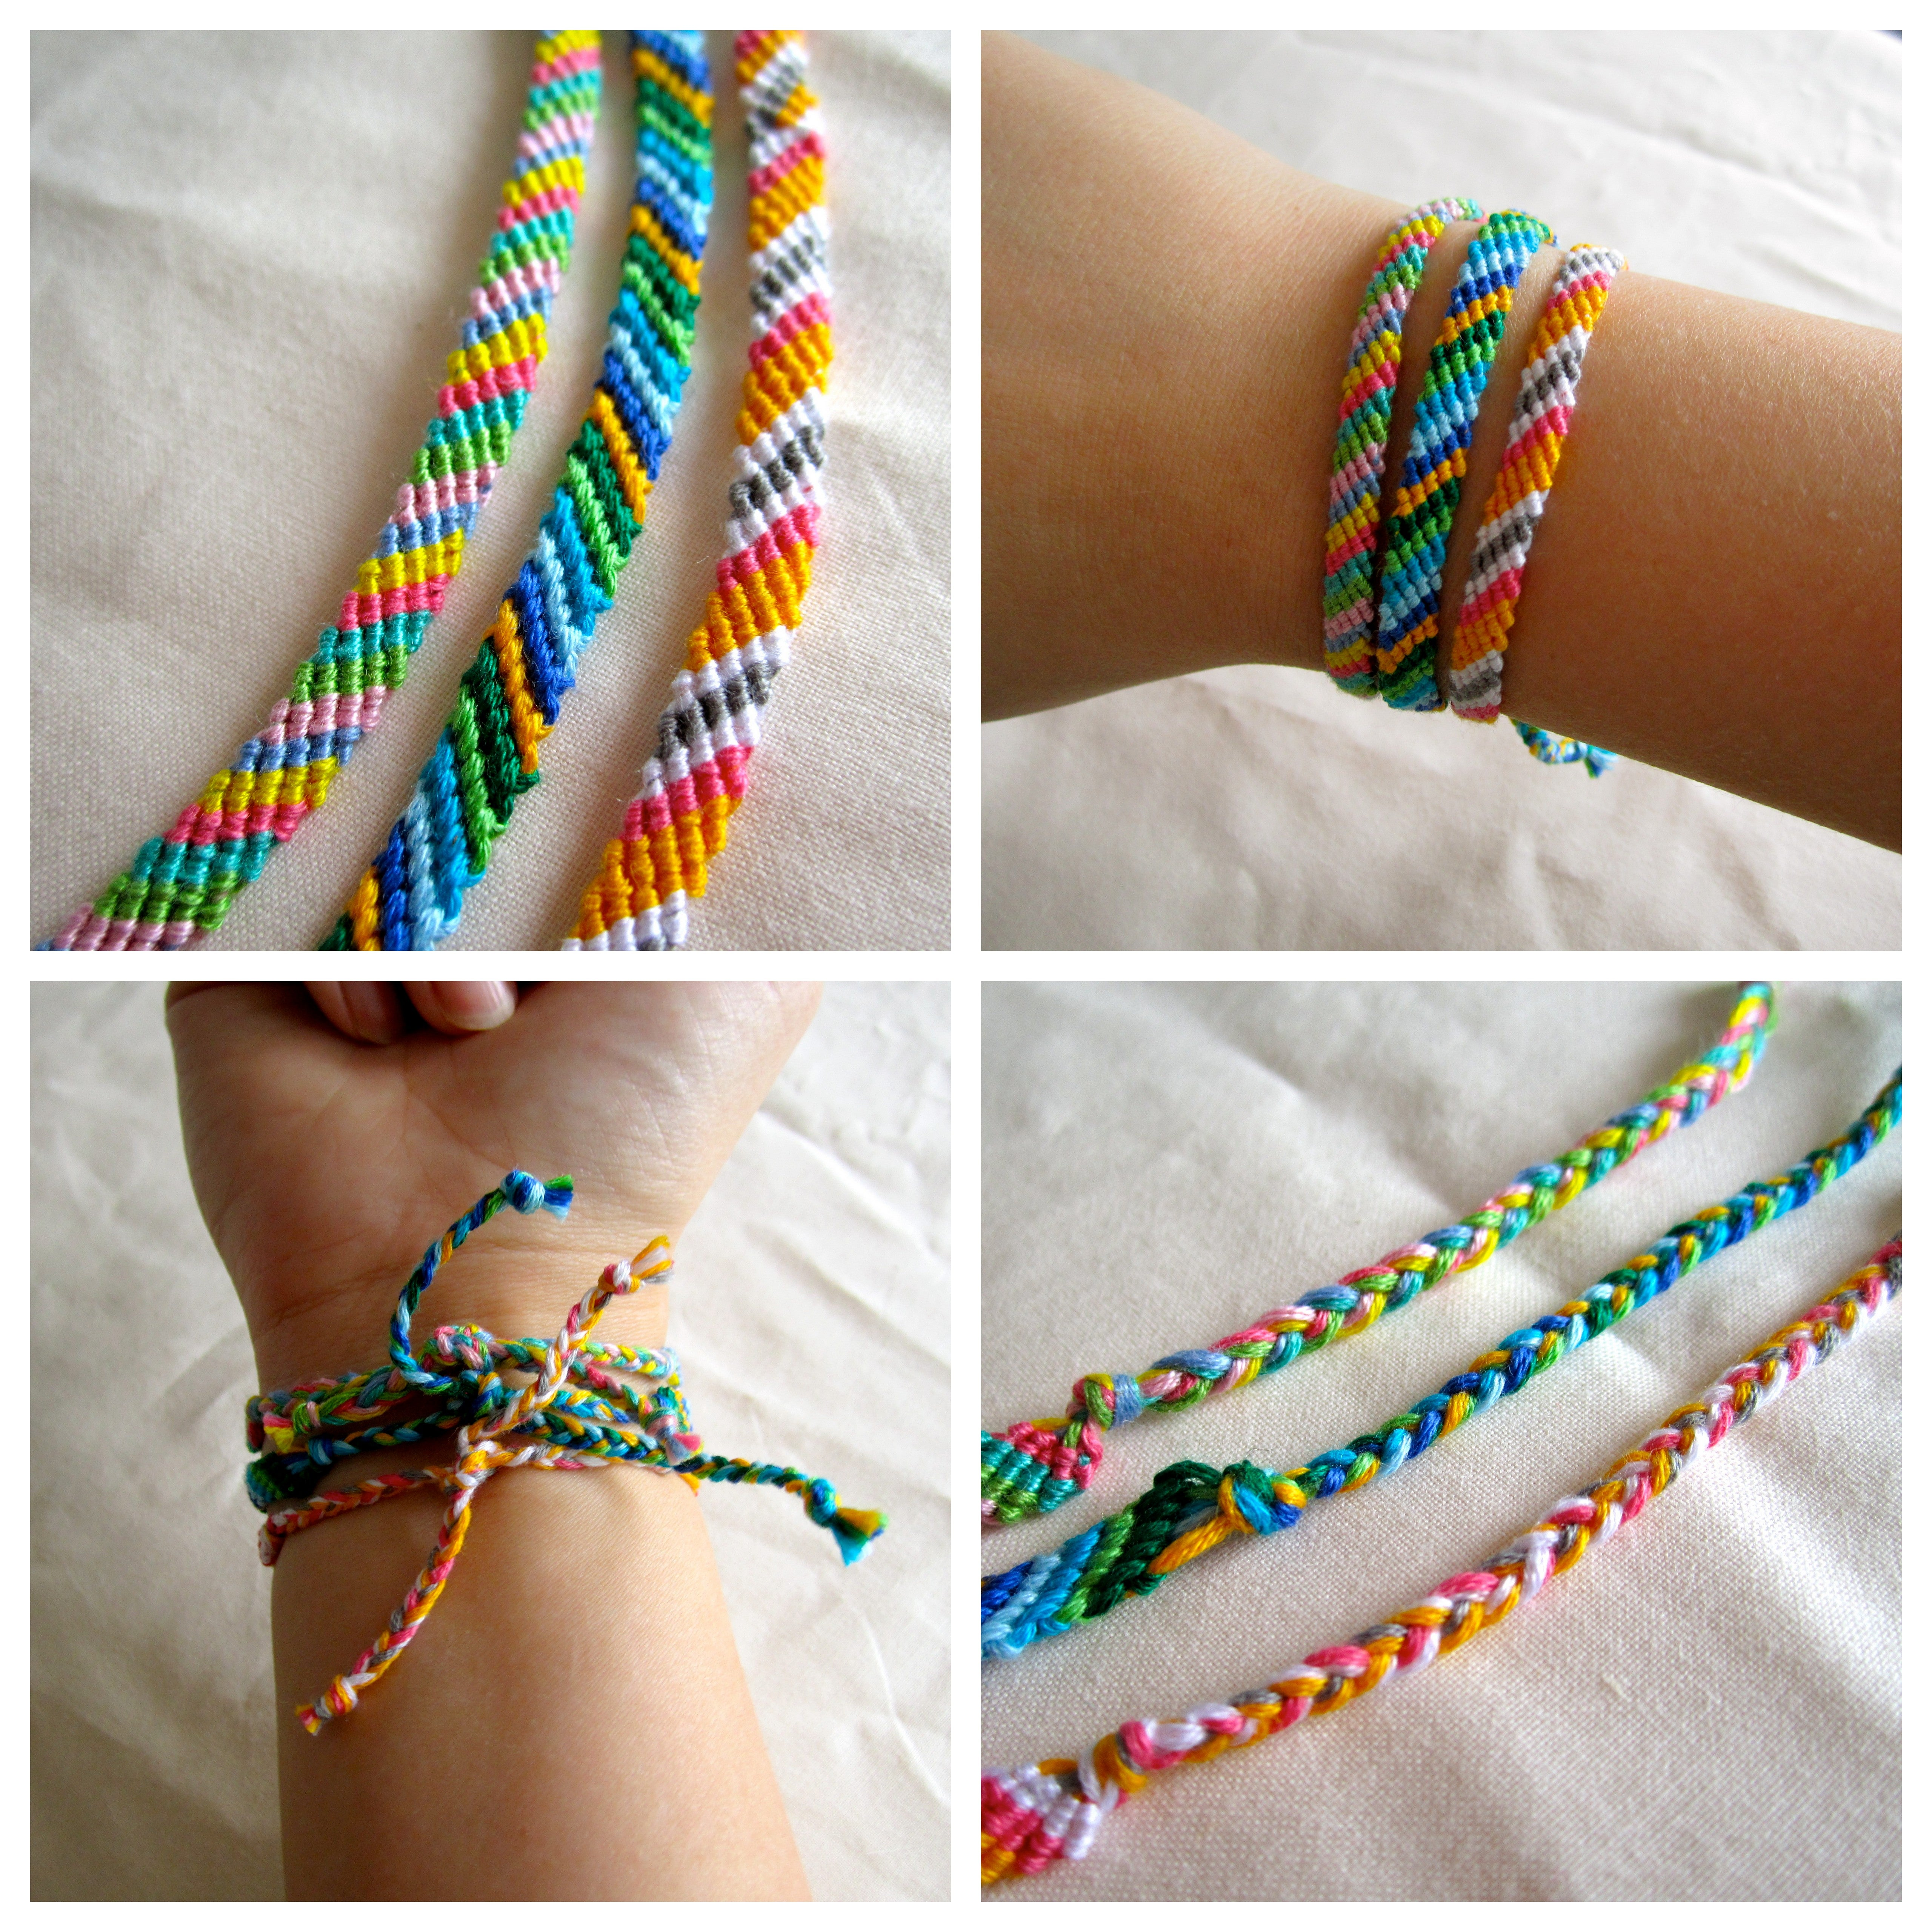 How To Make A Friendship Bracelet 9 Steps With Pictures Instructables